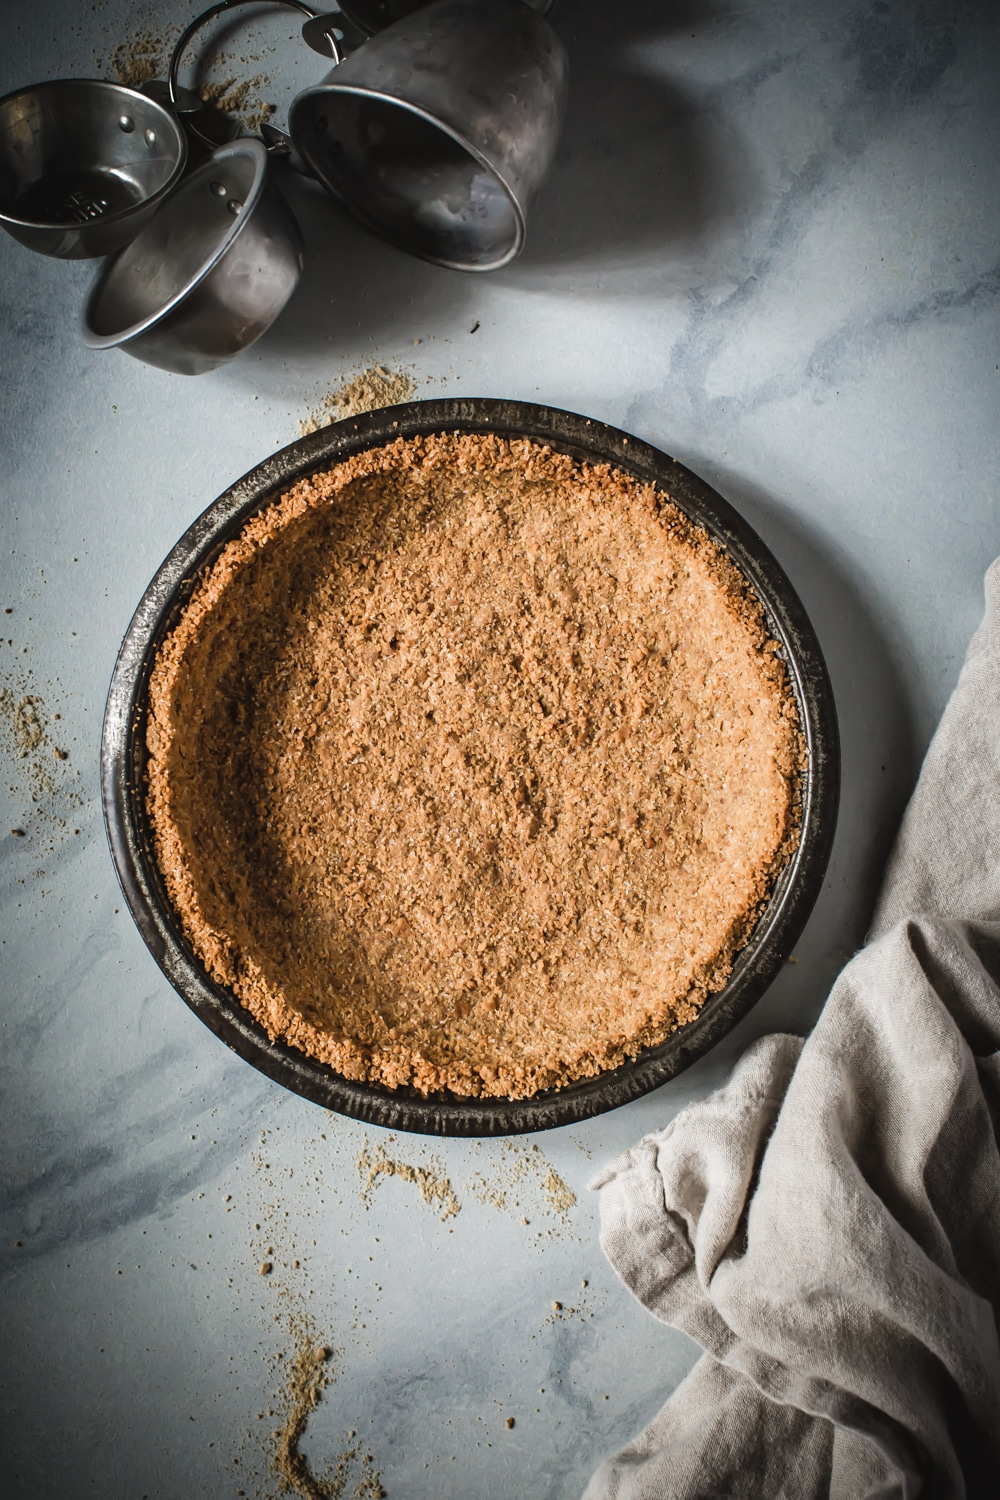 graham cracker crust in pie tin on marble counter